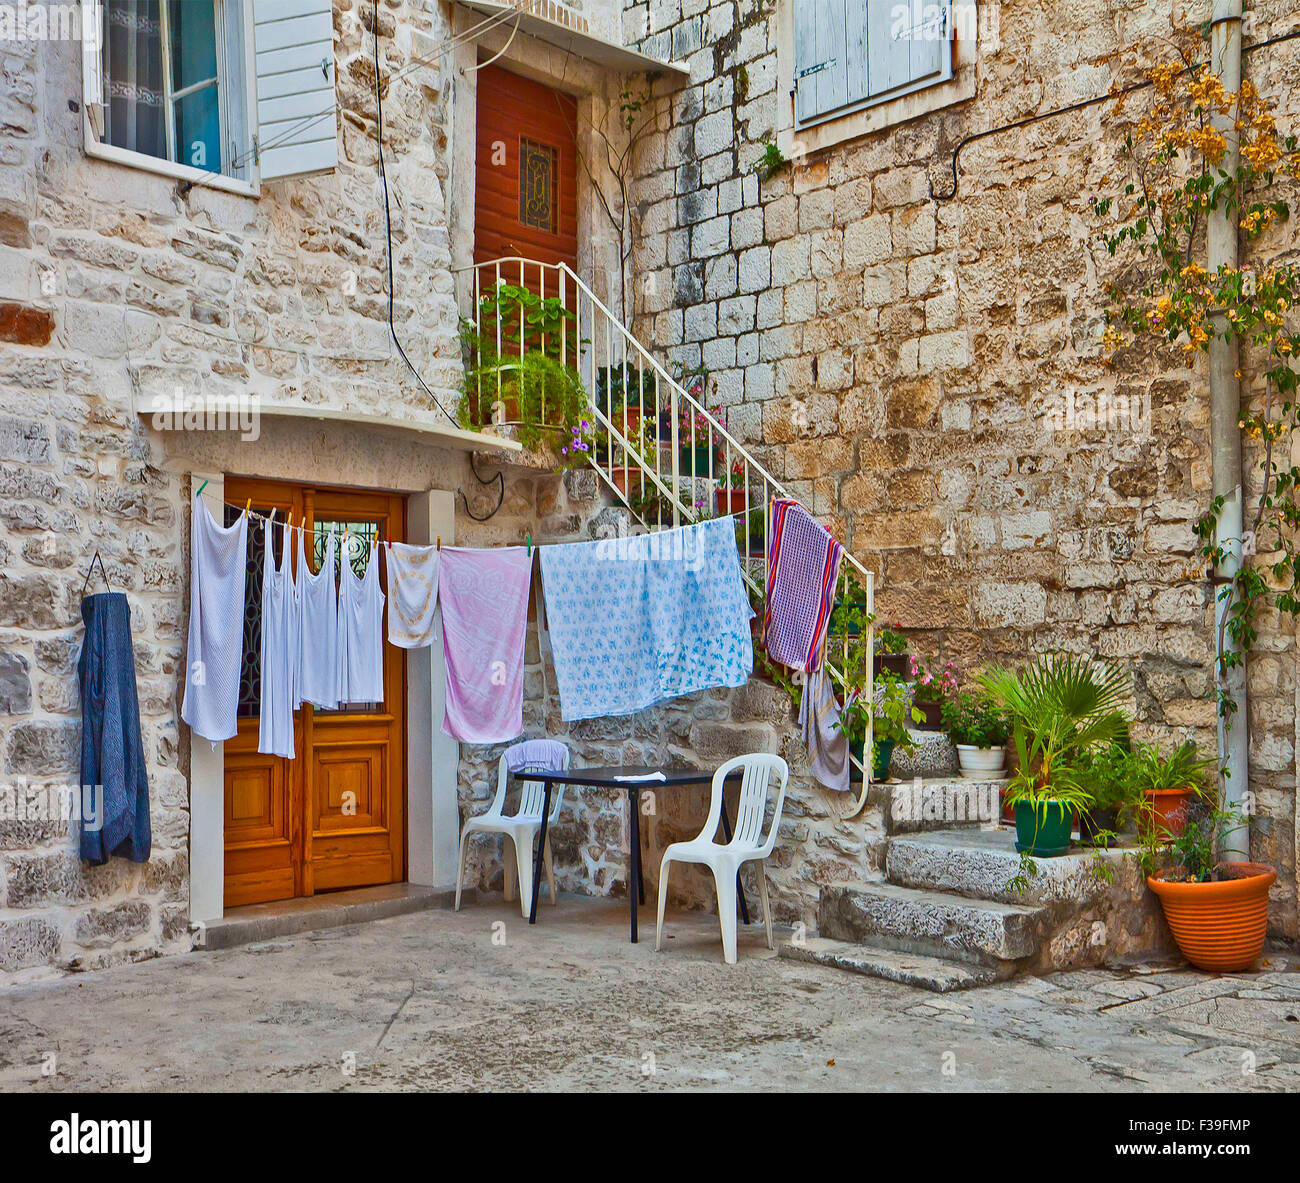 staircase full of plants and flowers leads to a Dalmatian house made of white stone blocks with laundry hanging - Stock Image